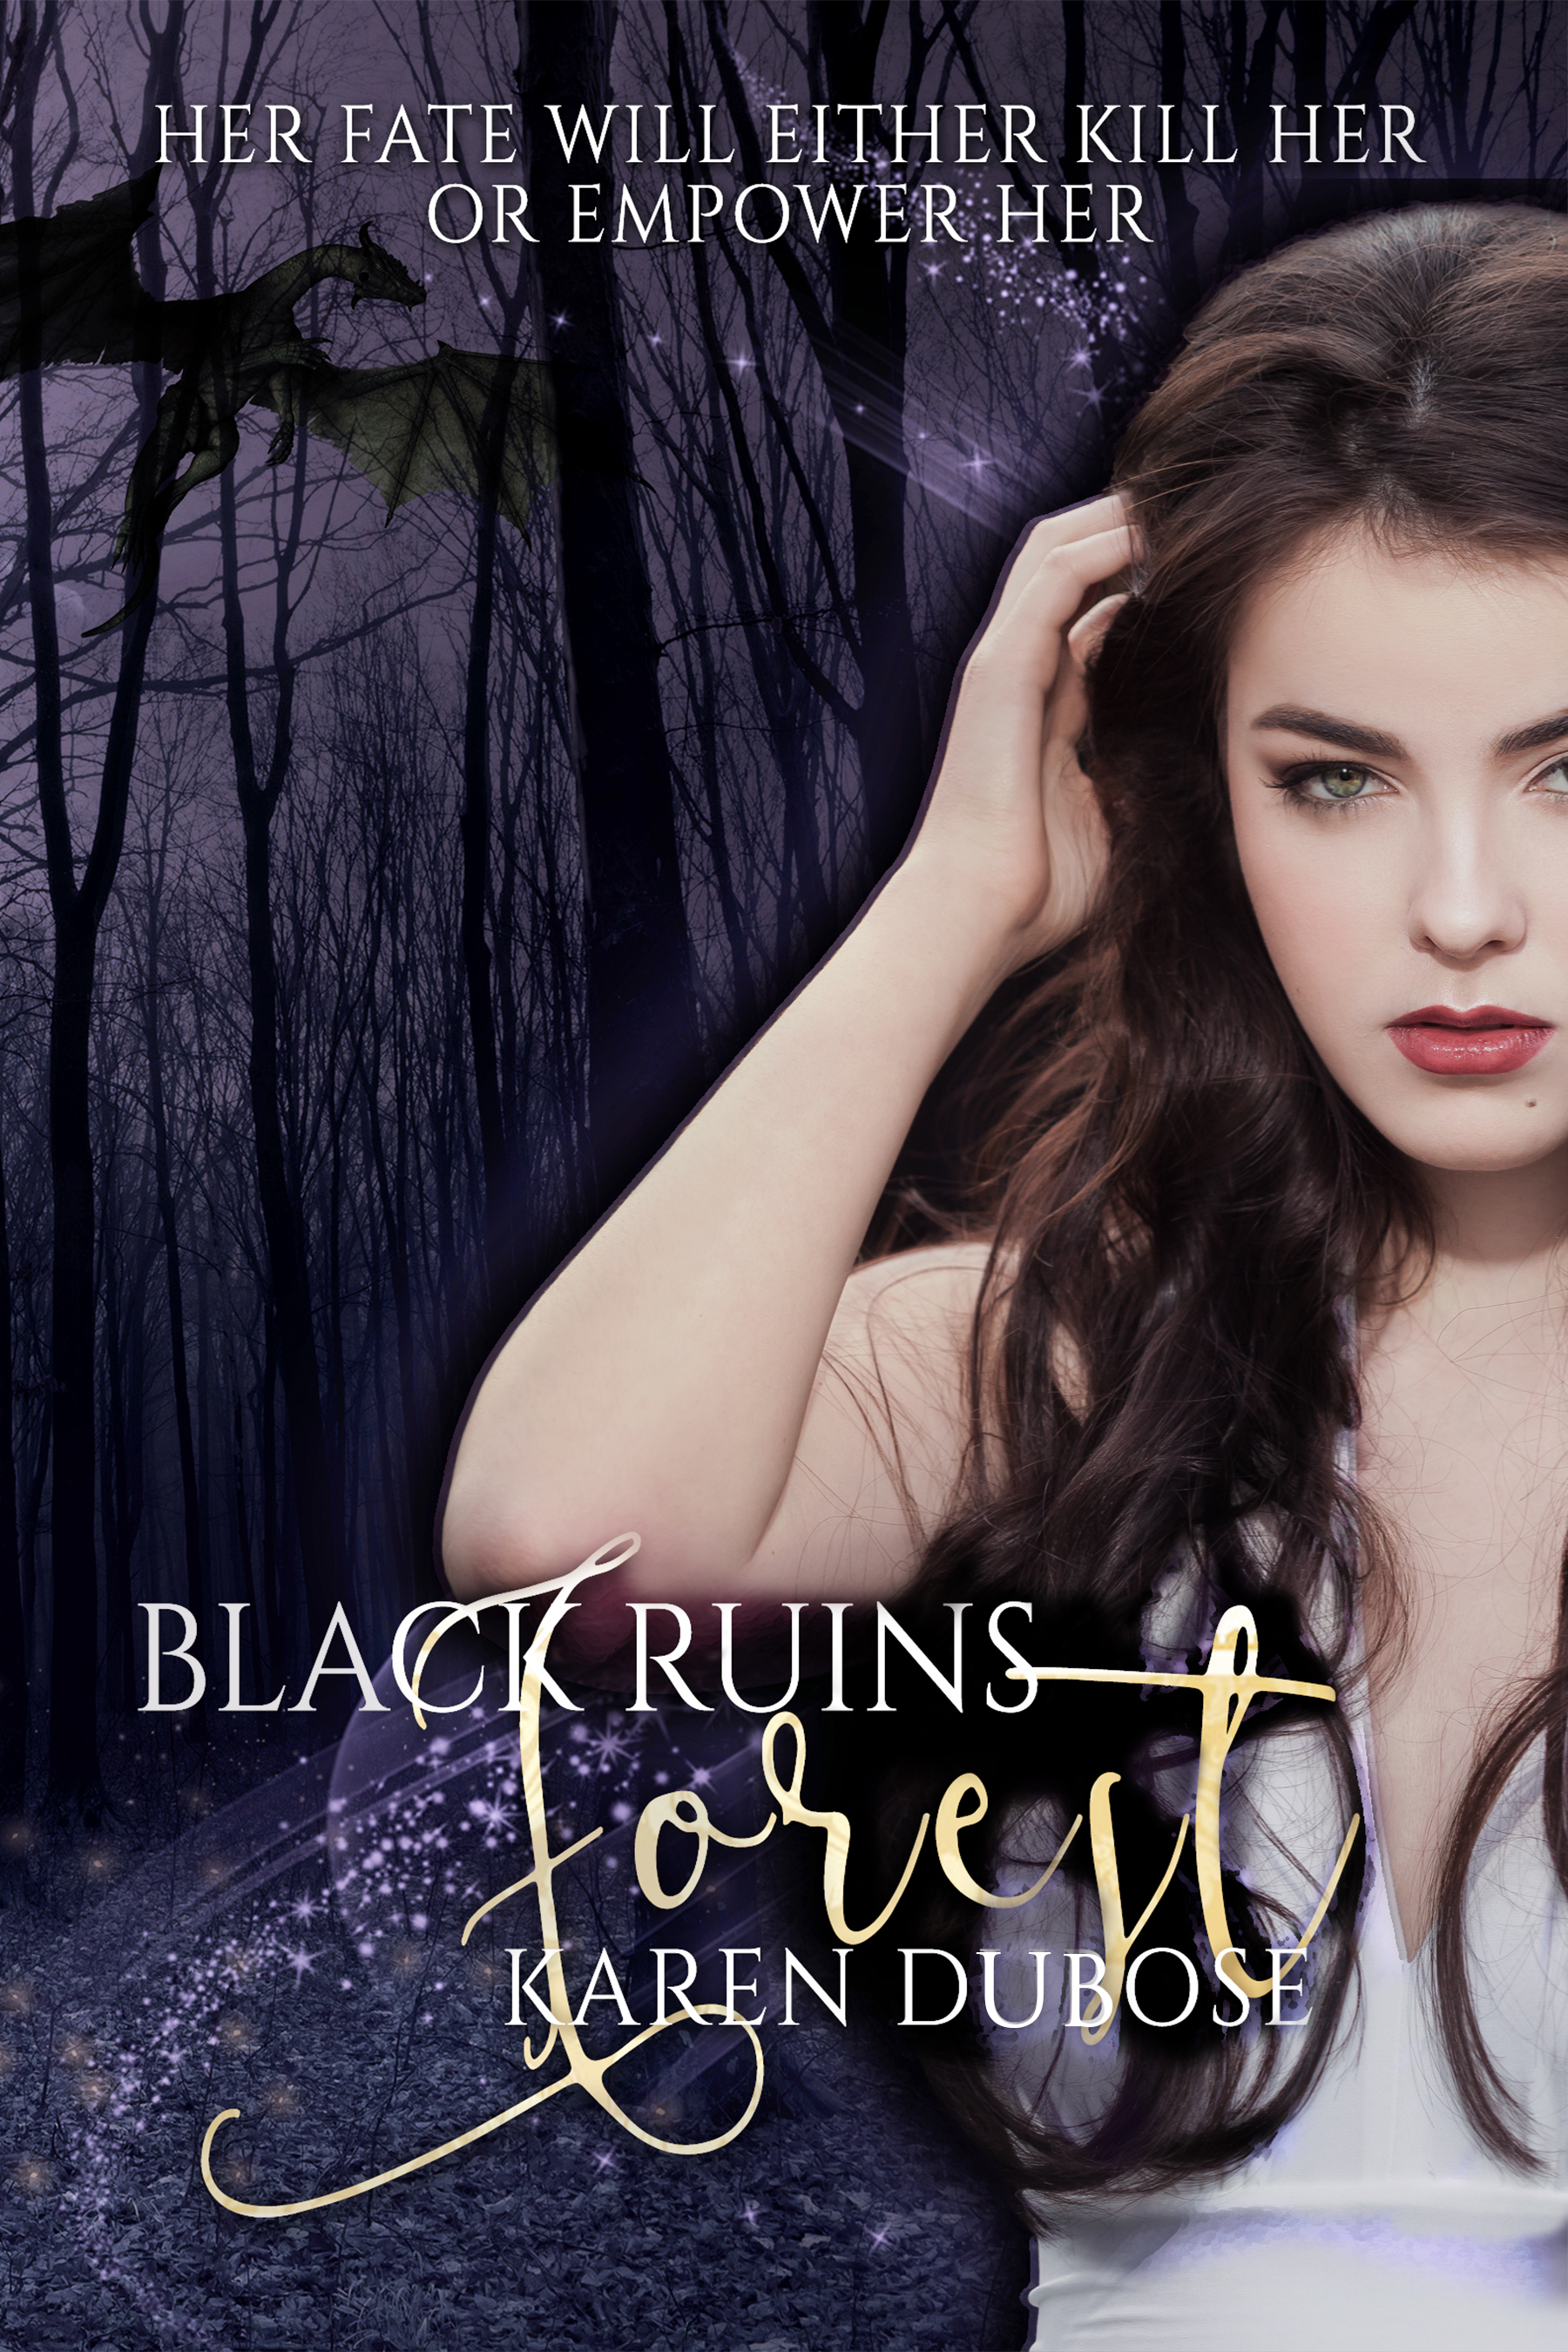 Black Ruins Forest by Karen Dubose published by Kingston Publishing